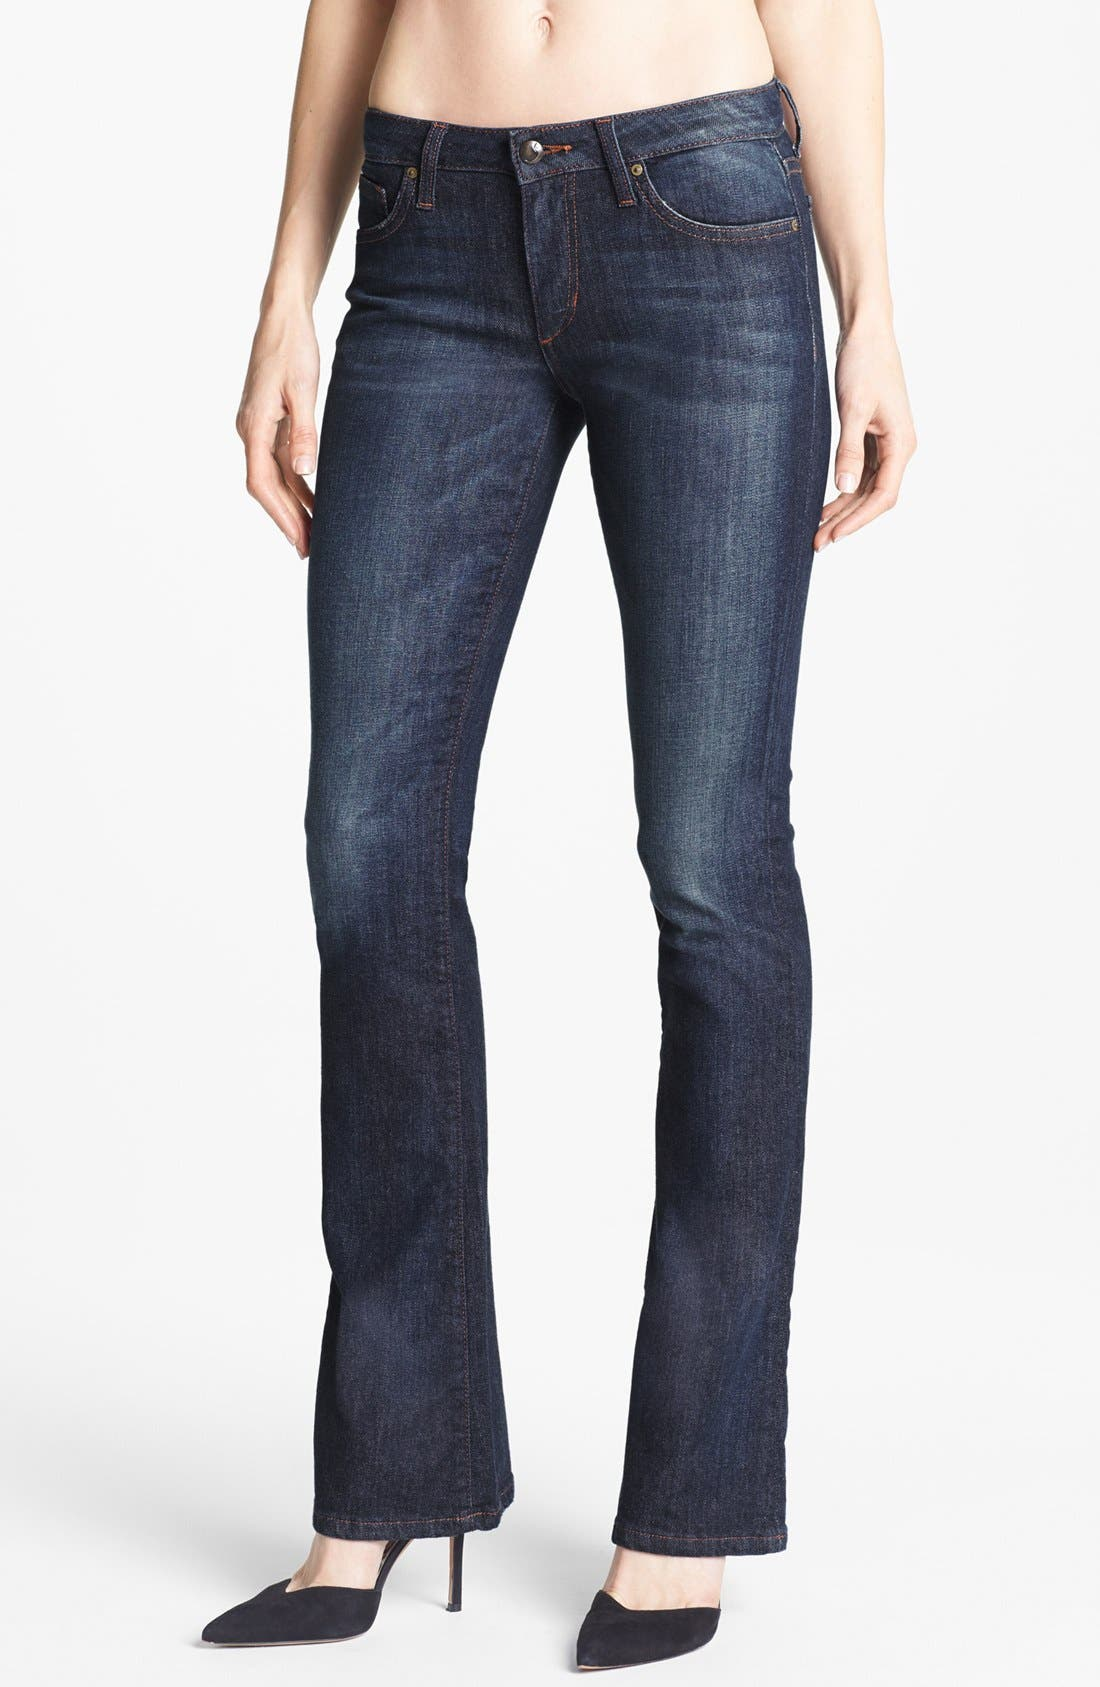 Alternate Image 1 Selected - Joe's 'The Honey' Curvy Bootcut Jeans (Quinn) (Online Only)